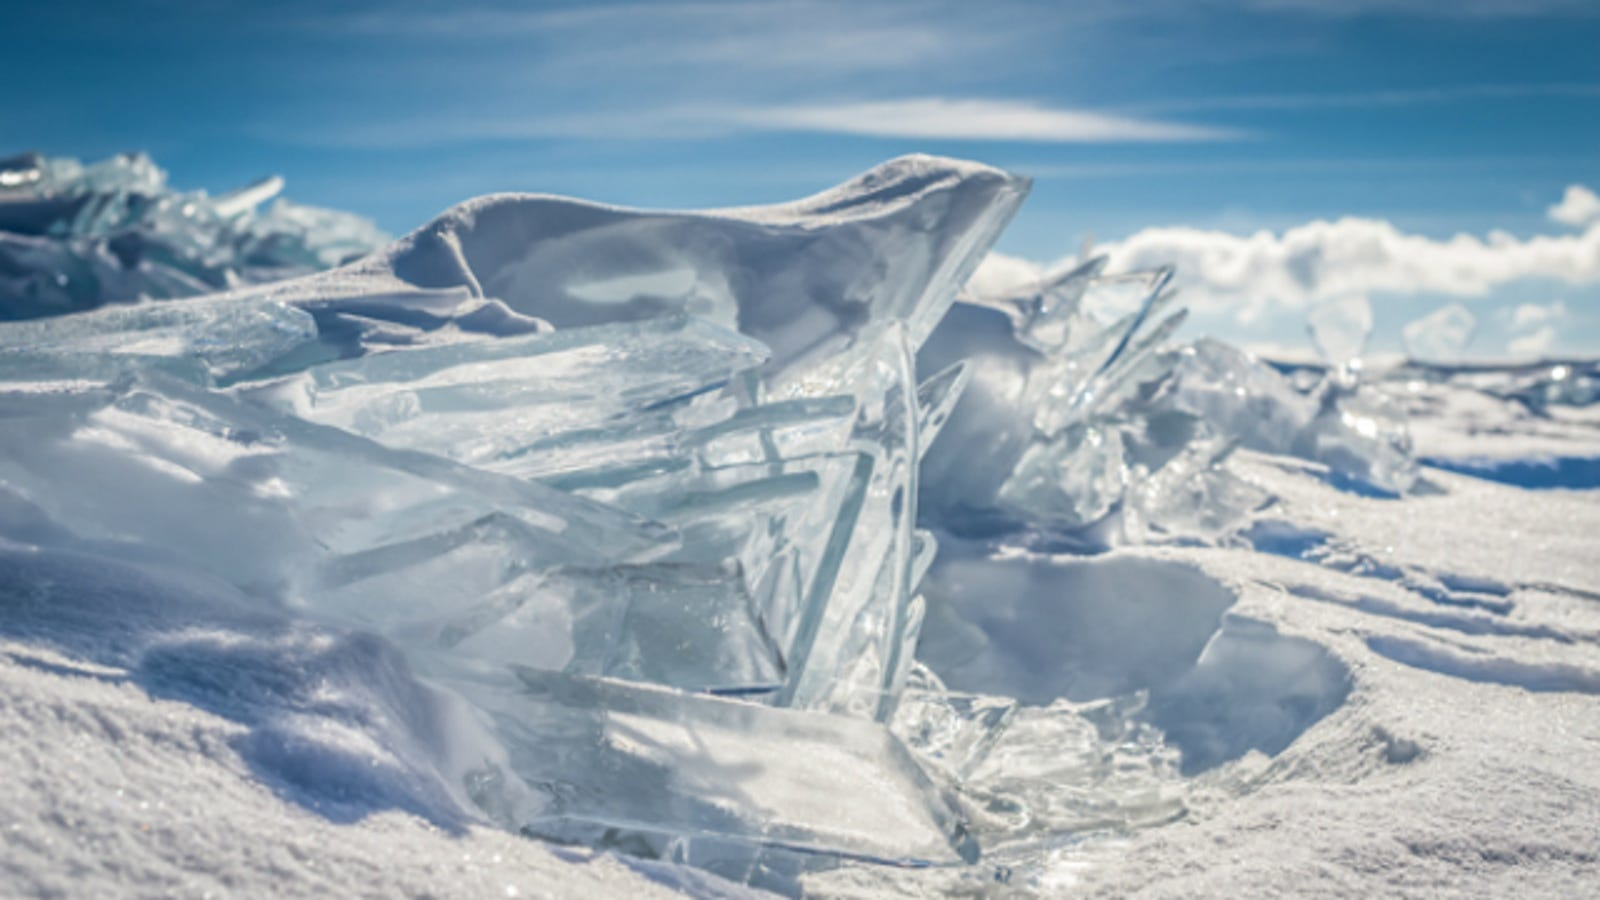 Lake Superior S Ice Looks Like Superman S Fortress Of Solitude